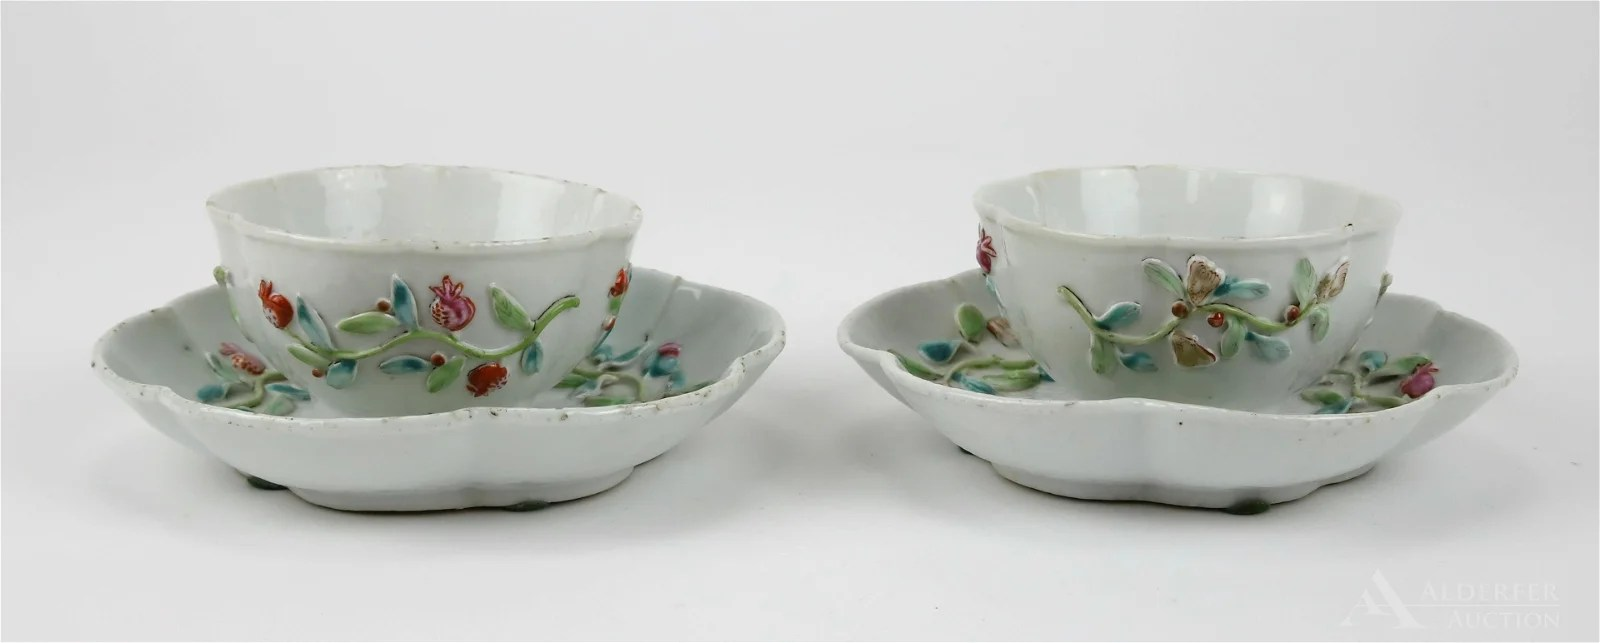 Chinese Export Tea Bowls and Saucers